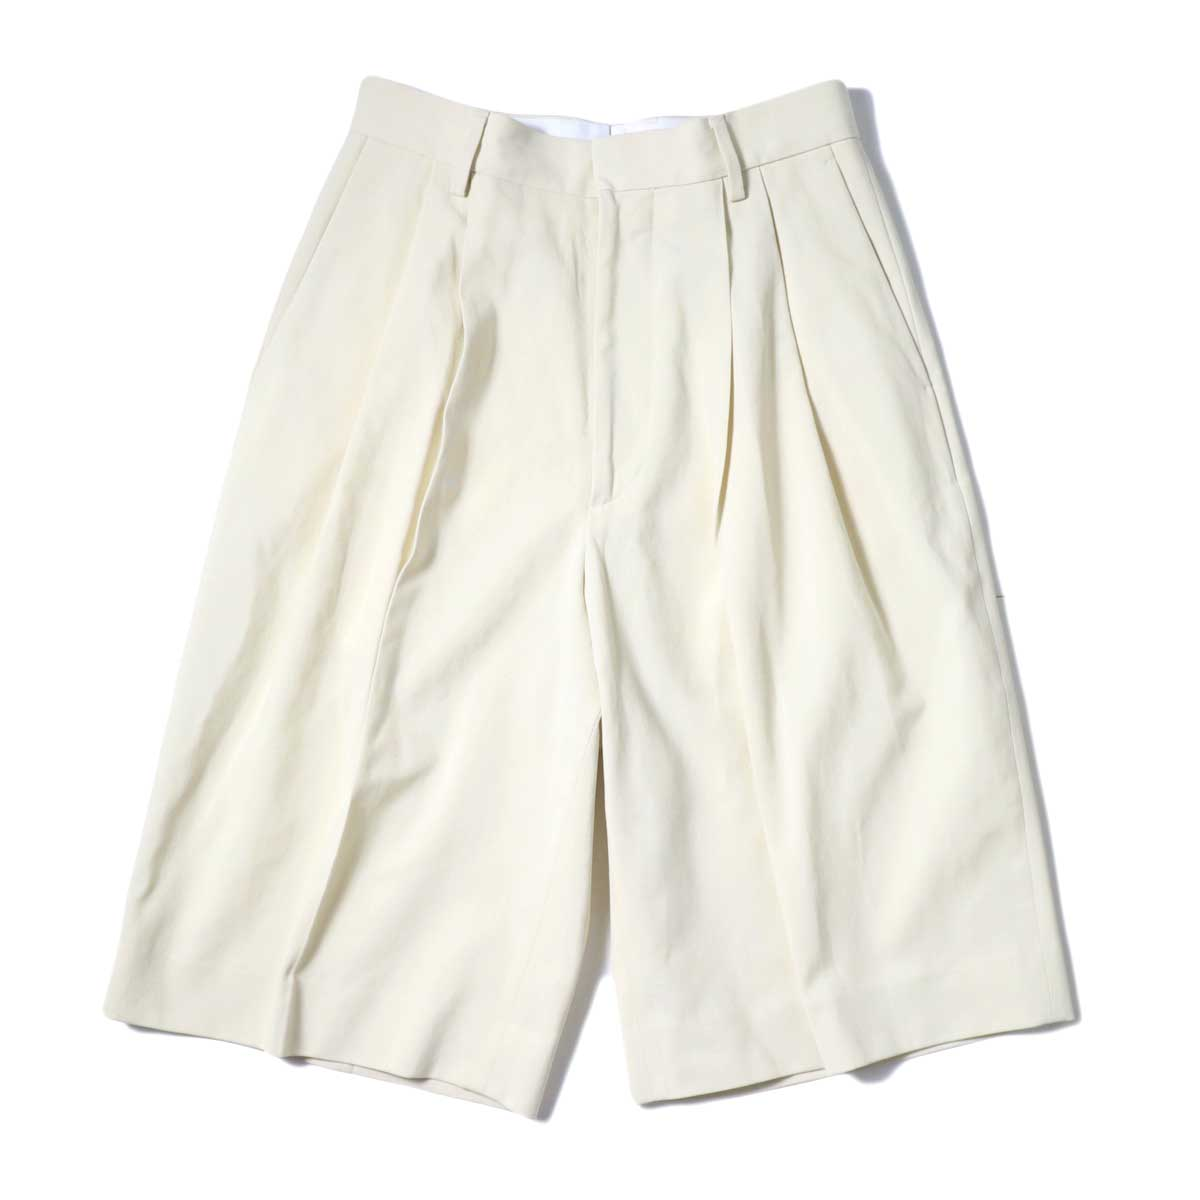 YLEVE / HIGH COUNT COTTON KERSEY SHORTS (Straw Beige) 正面